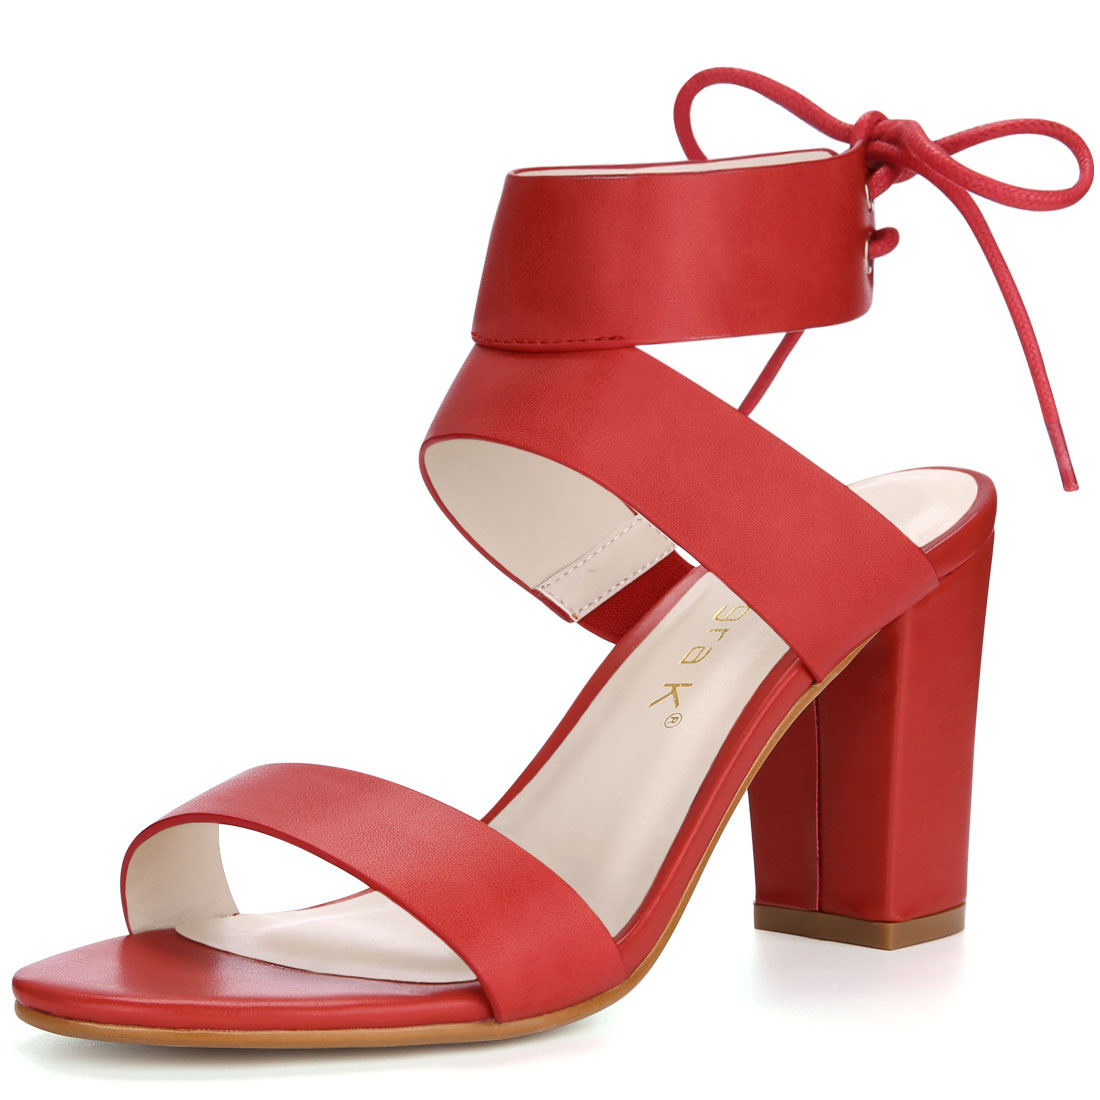 Women Open Toe Lace Up Back High Block Heel Sandals Red US 7.5